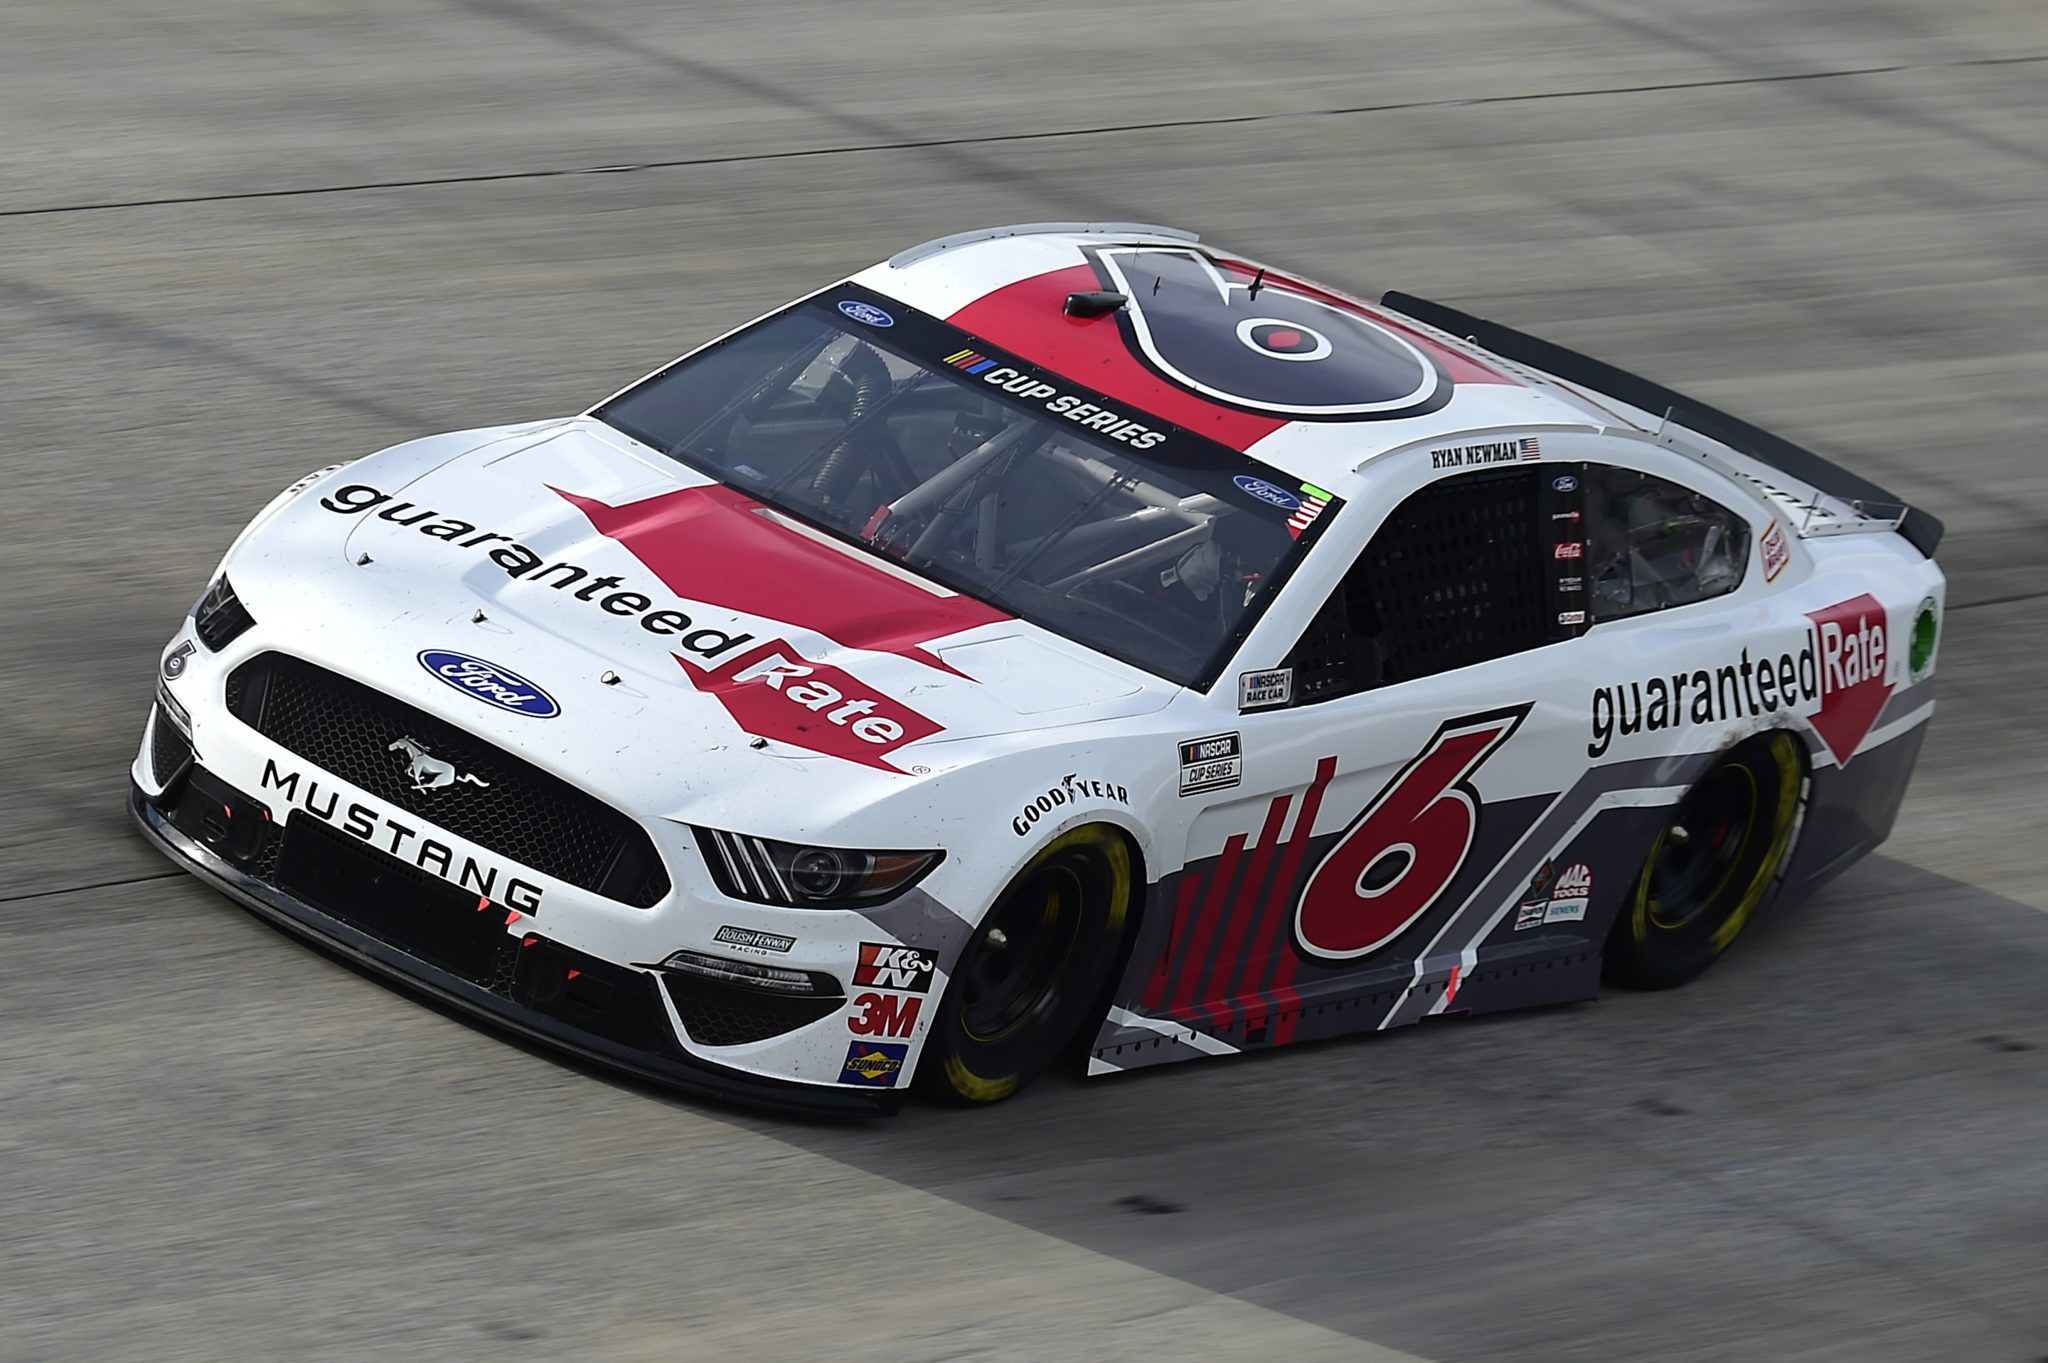 DOVER, DELAWARE - AUGUST 22: Ryan Newman, driver of the #6 Guaranteed Rate Ford, drives during the NASCAR Cup Series Drydene 311 at Dover International Speedway on August 22, 2020 in Dover, Delaware. (Photo by Jared C. Tilton/Getty Images) | Getty Images